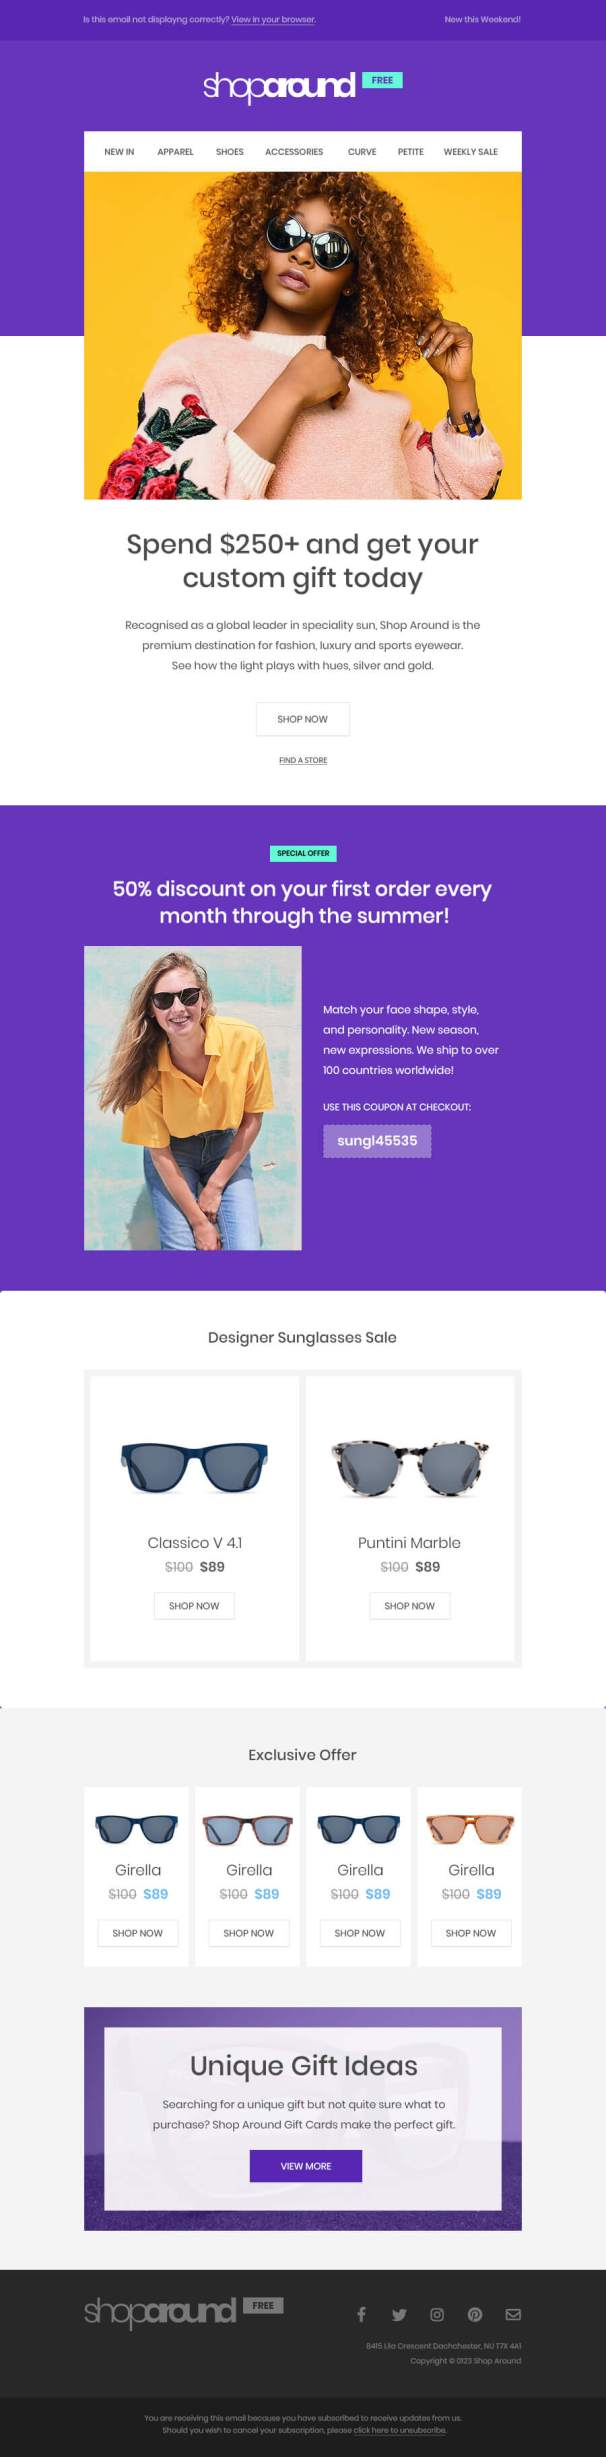 Shop-Around_E-commerce_Free-1